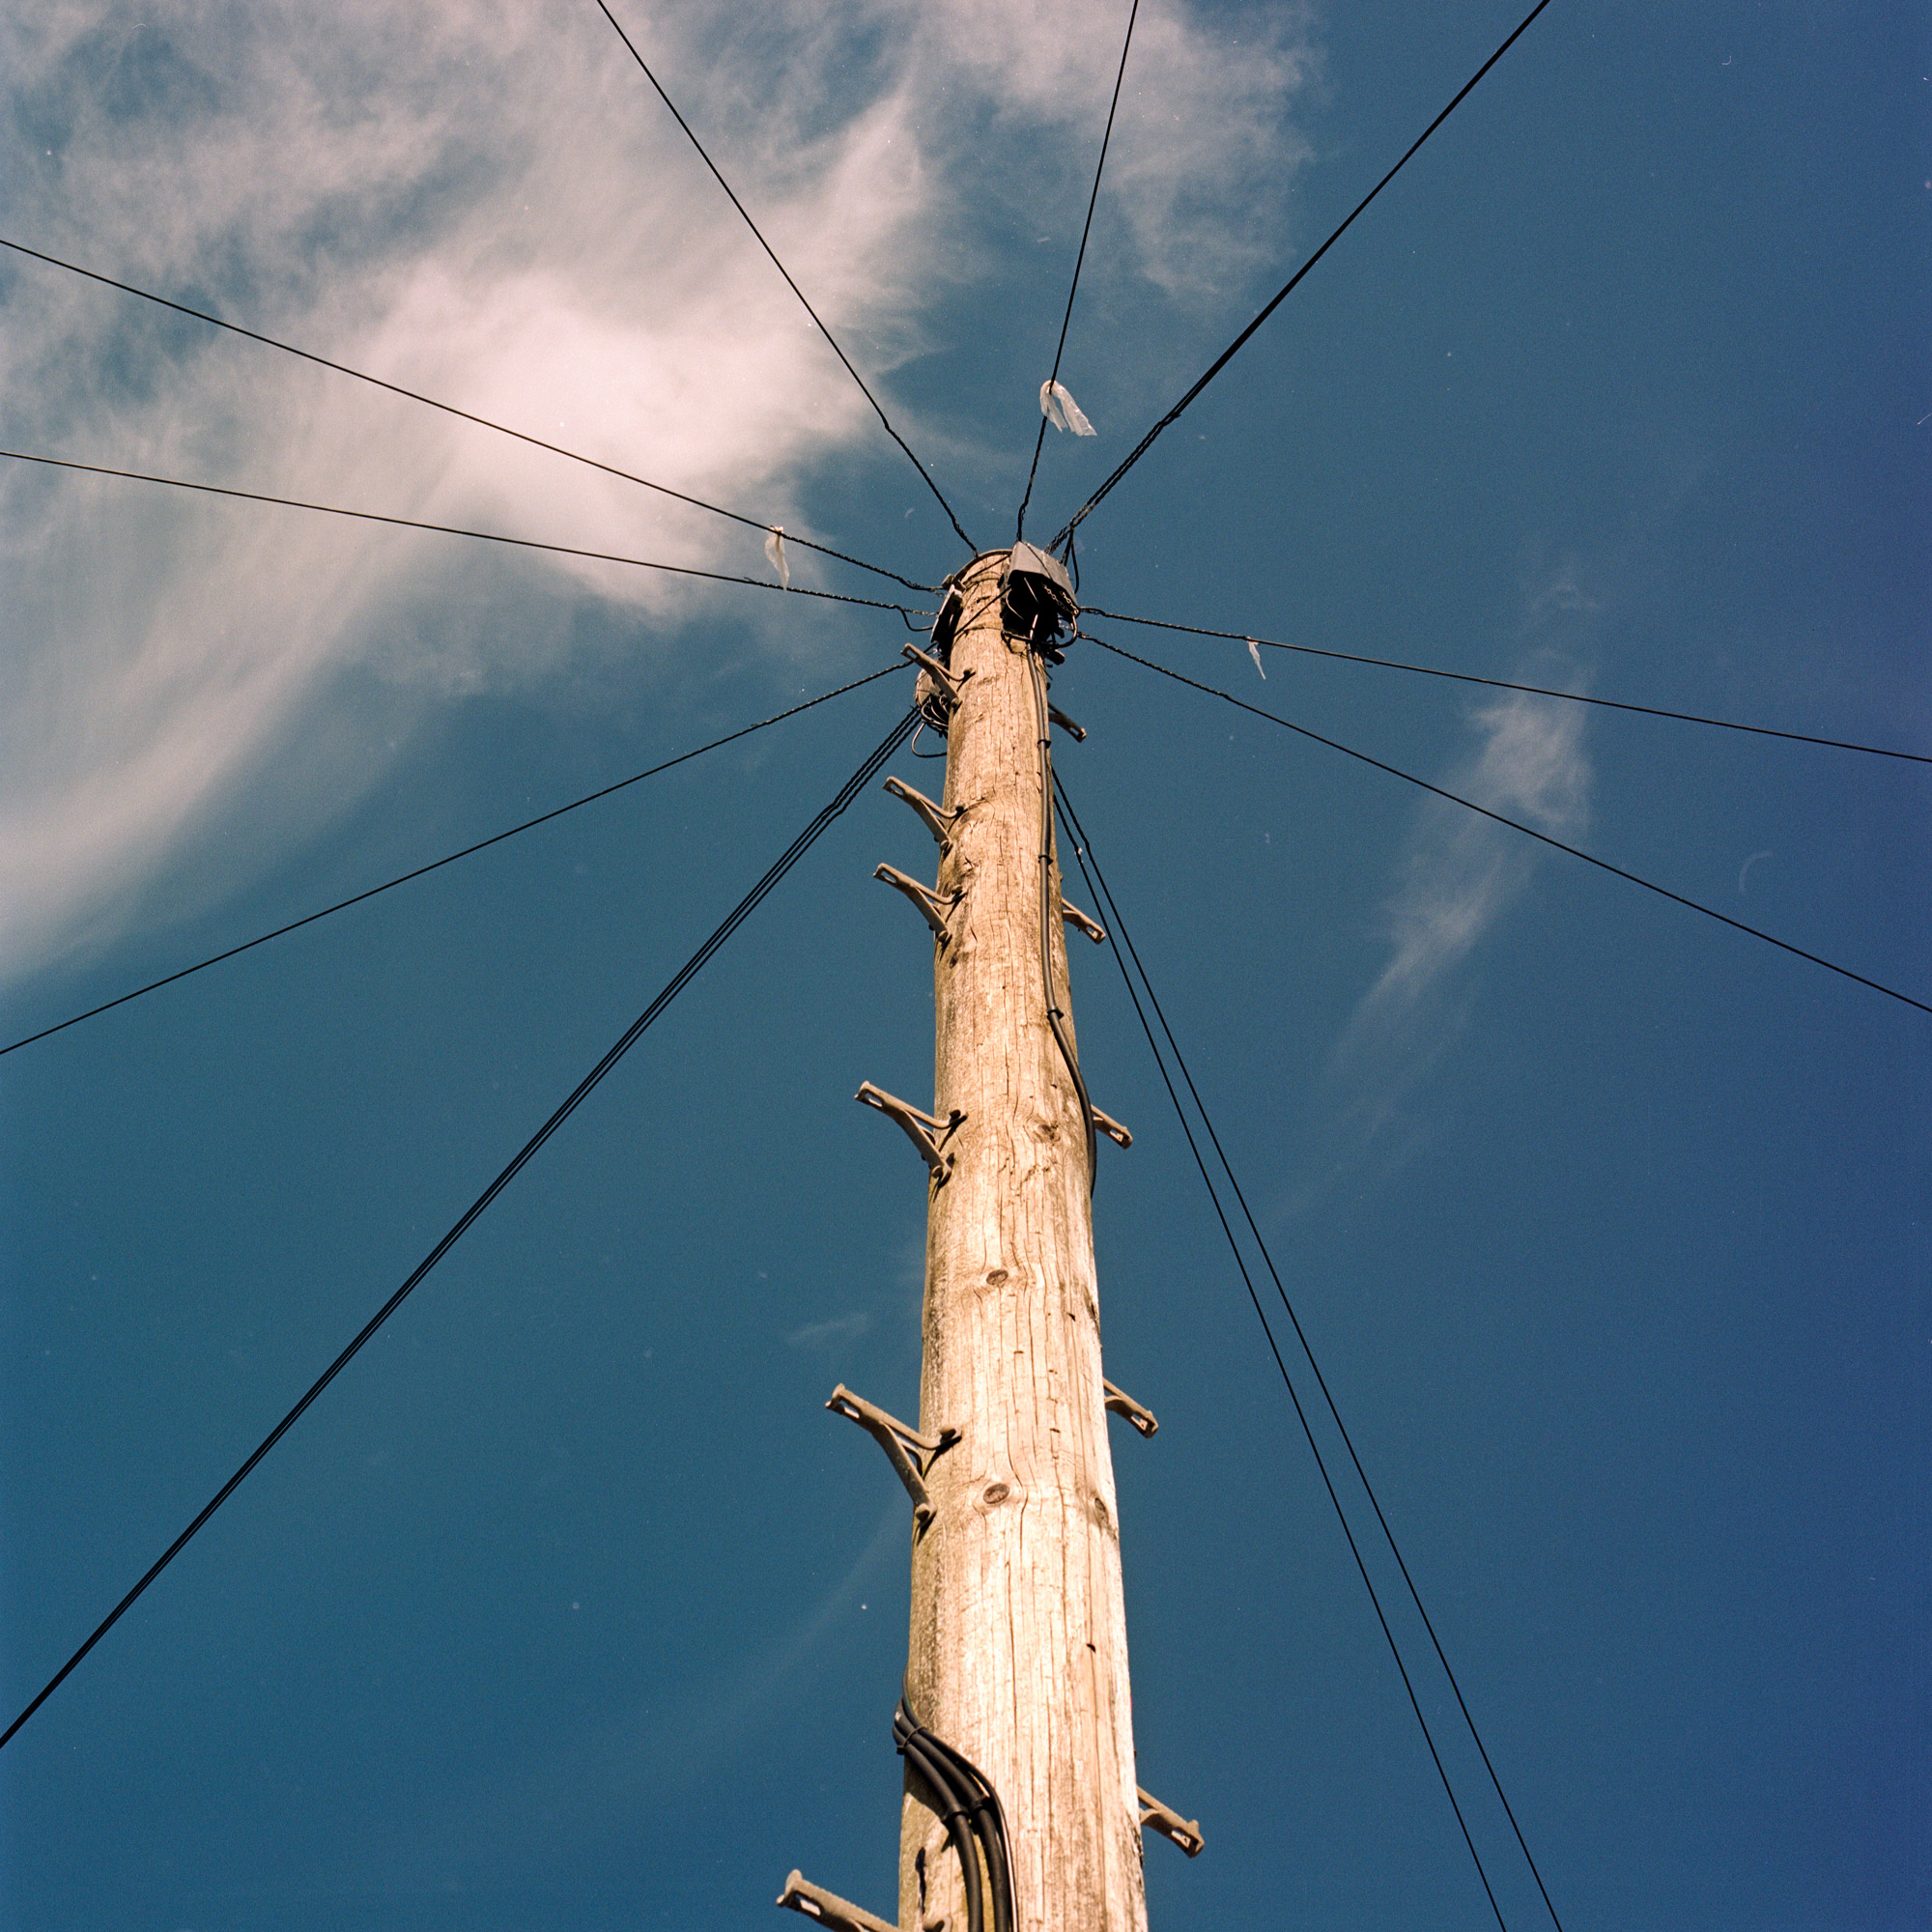 If I Climb Will I Touch The Sky, Telephone Pole, Observations Series, Photography by Ioannis Koussertari